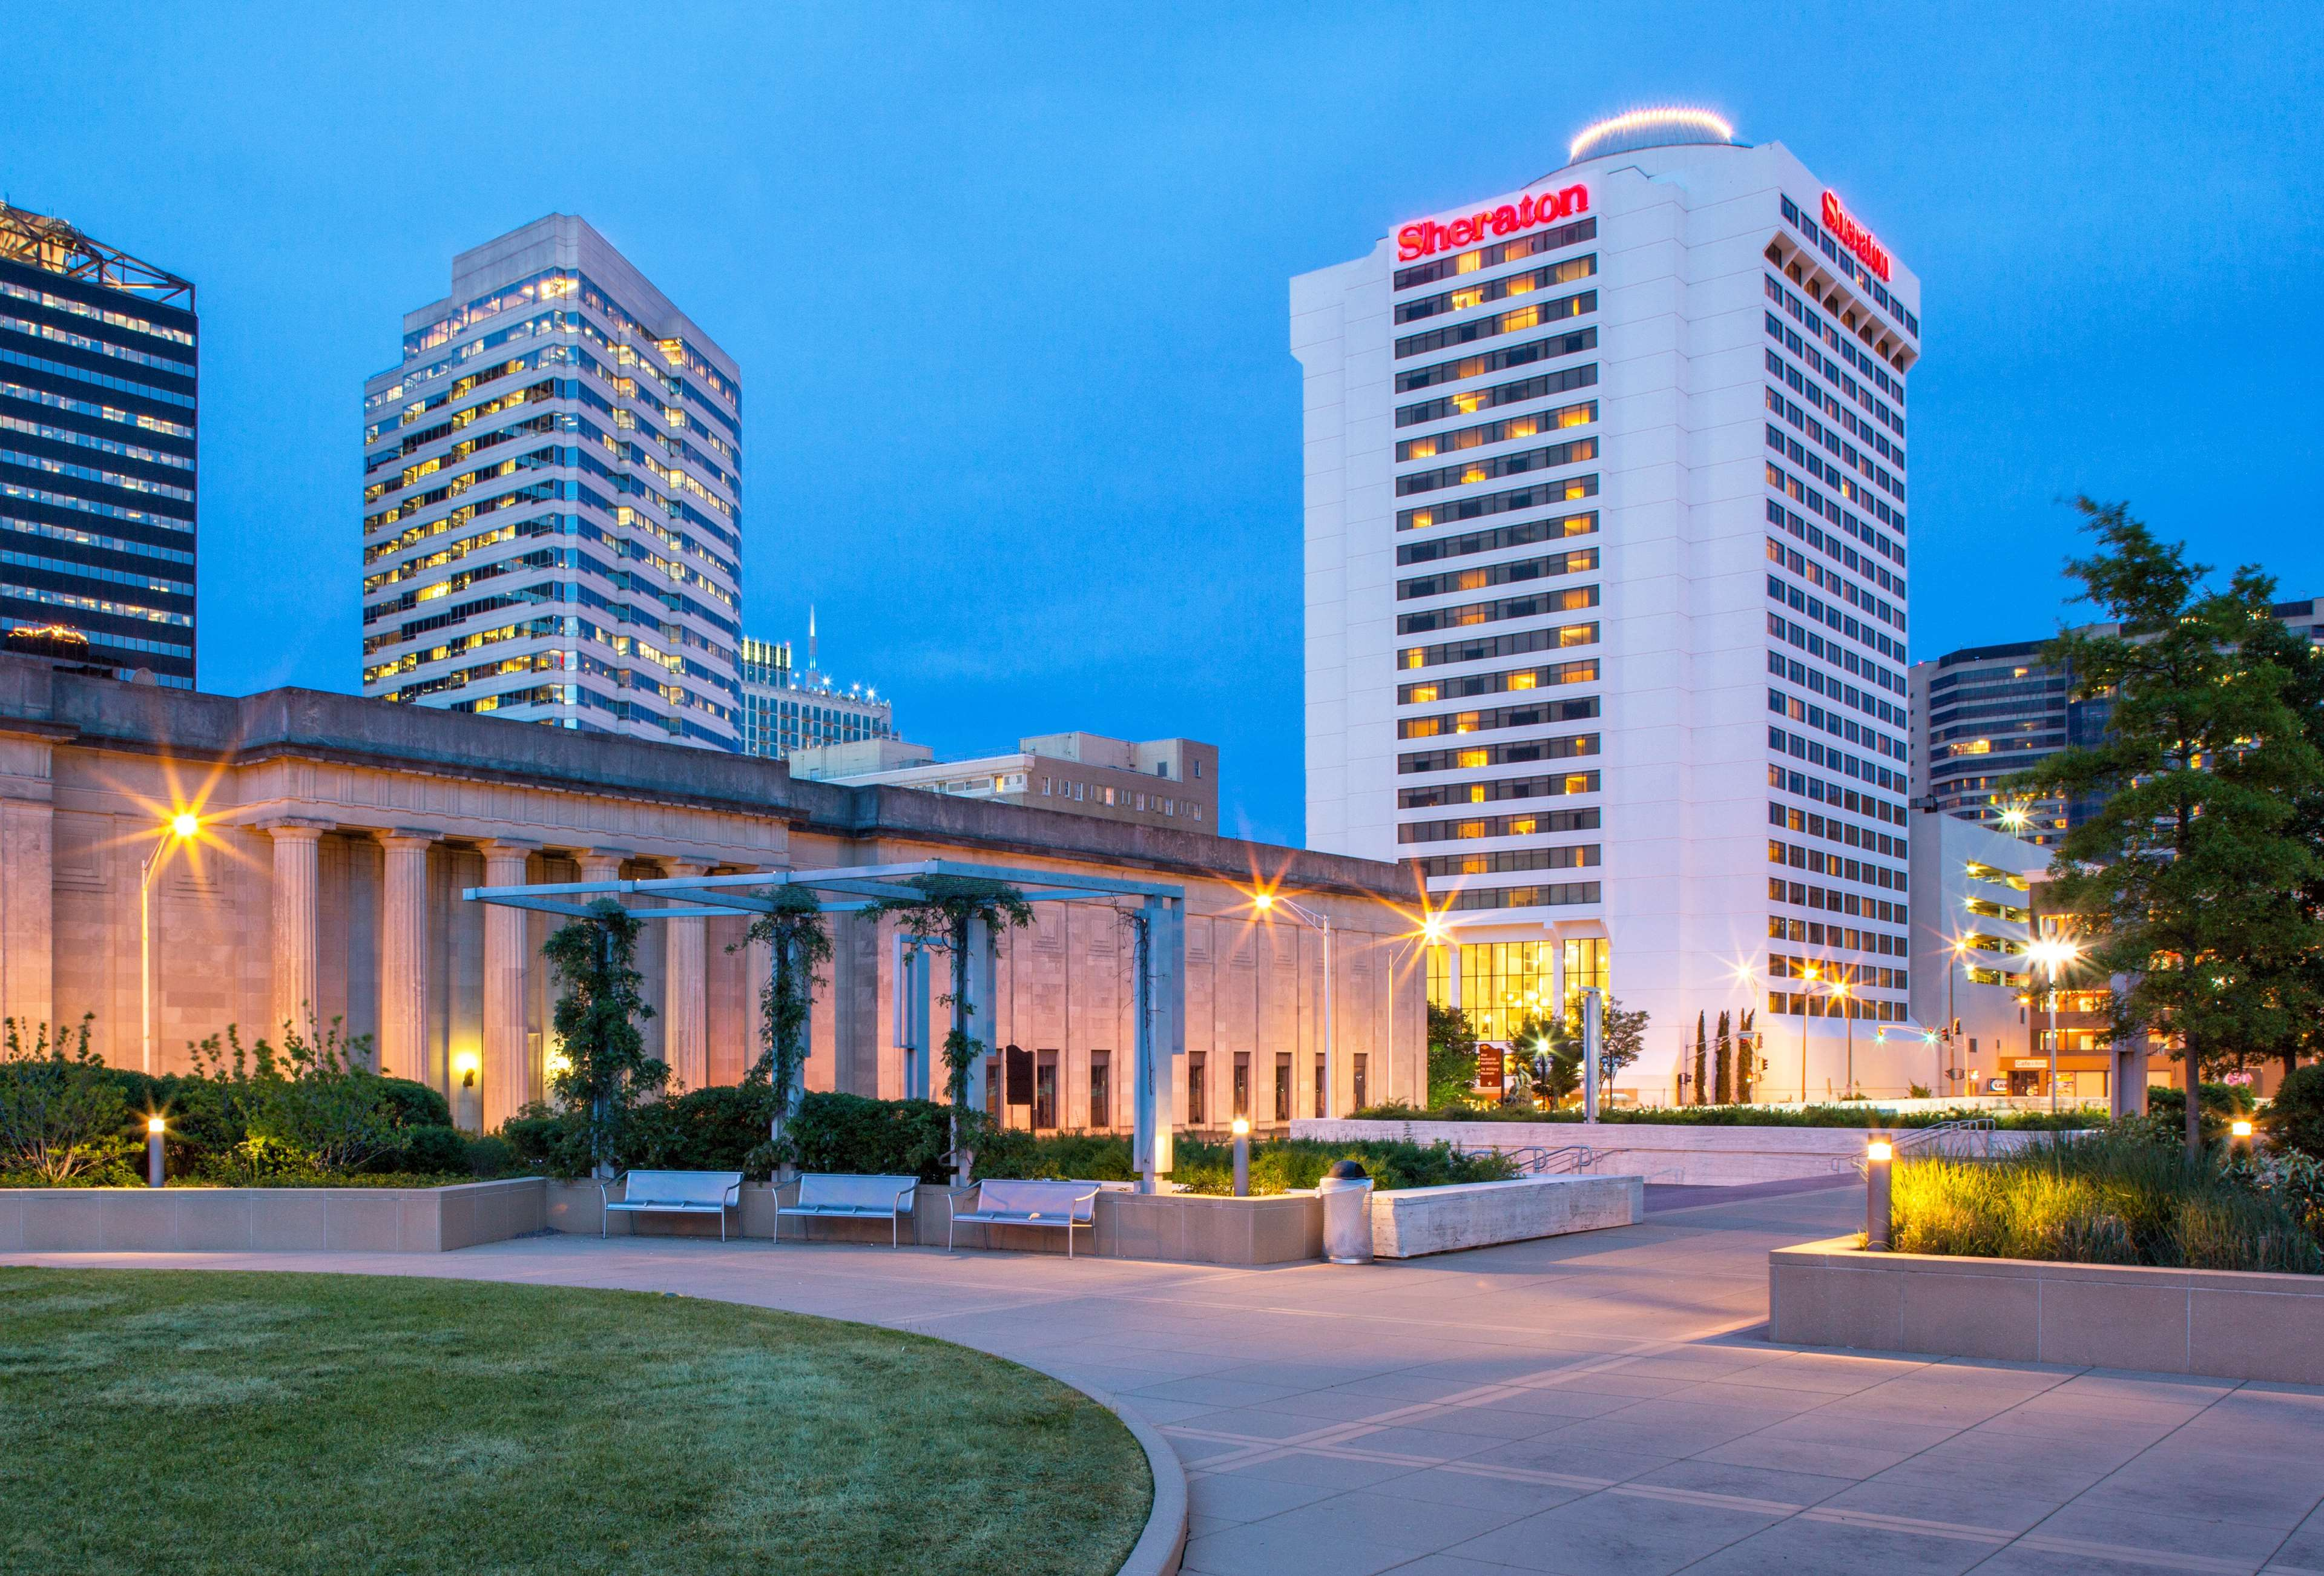 Sheraton Grand Nashville Downtown, Nashville Tennessee (TN